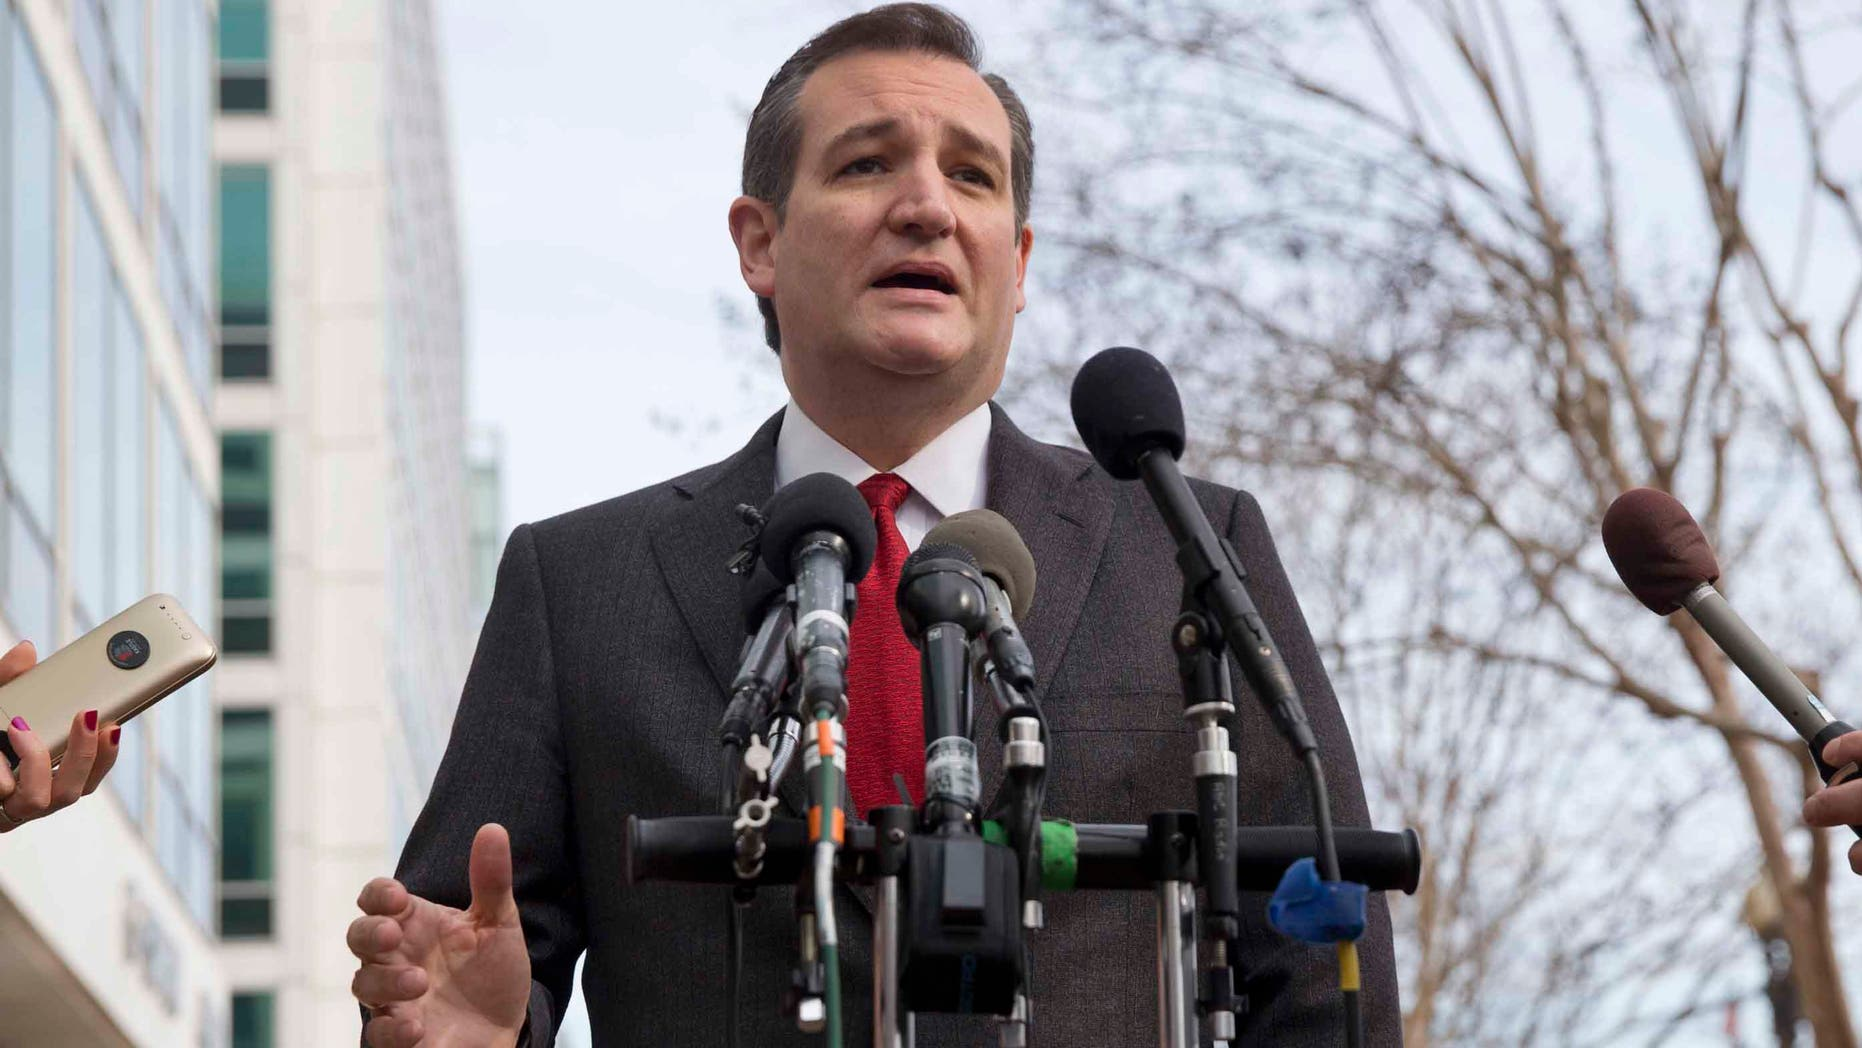 """Republican presidential candidate, Sen. Ted Cruz, R-Texas speaks to the media about events in Brussels, Tuesday, March 22, 2016, near the Capitol in Washington. Cruz said he would use the """"full force and fury"""" of the U.S. military to defeat the Islamic State group.  (AP Photo/Jacquelyn Martin)"""